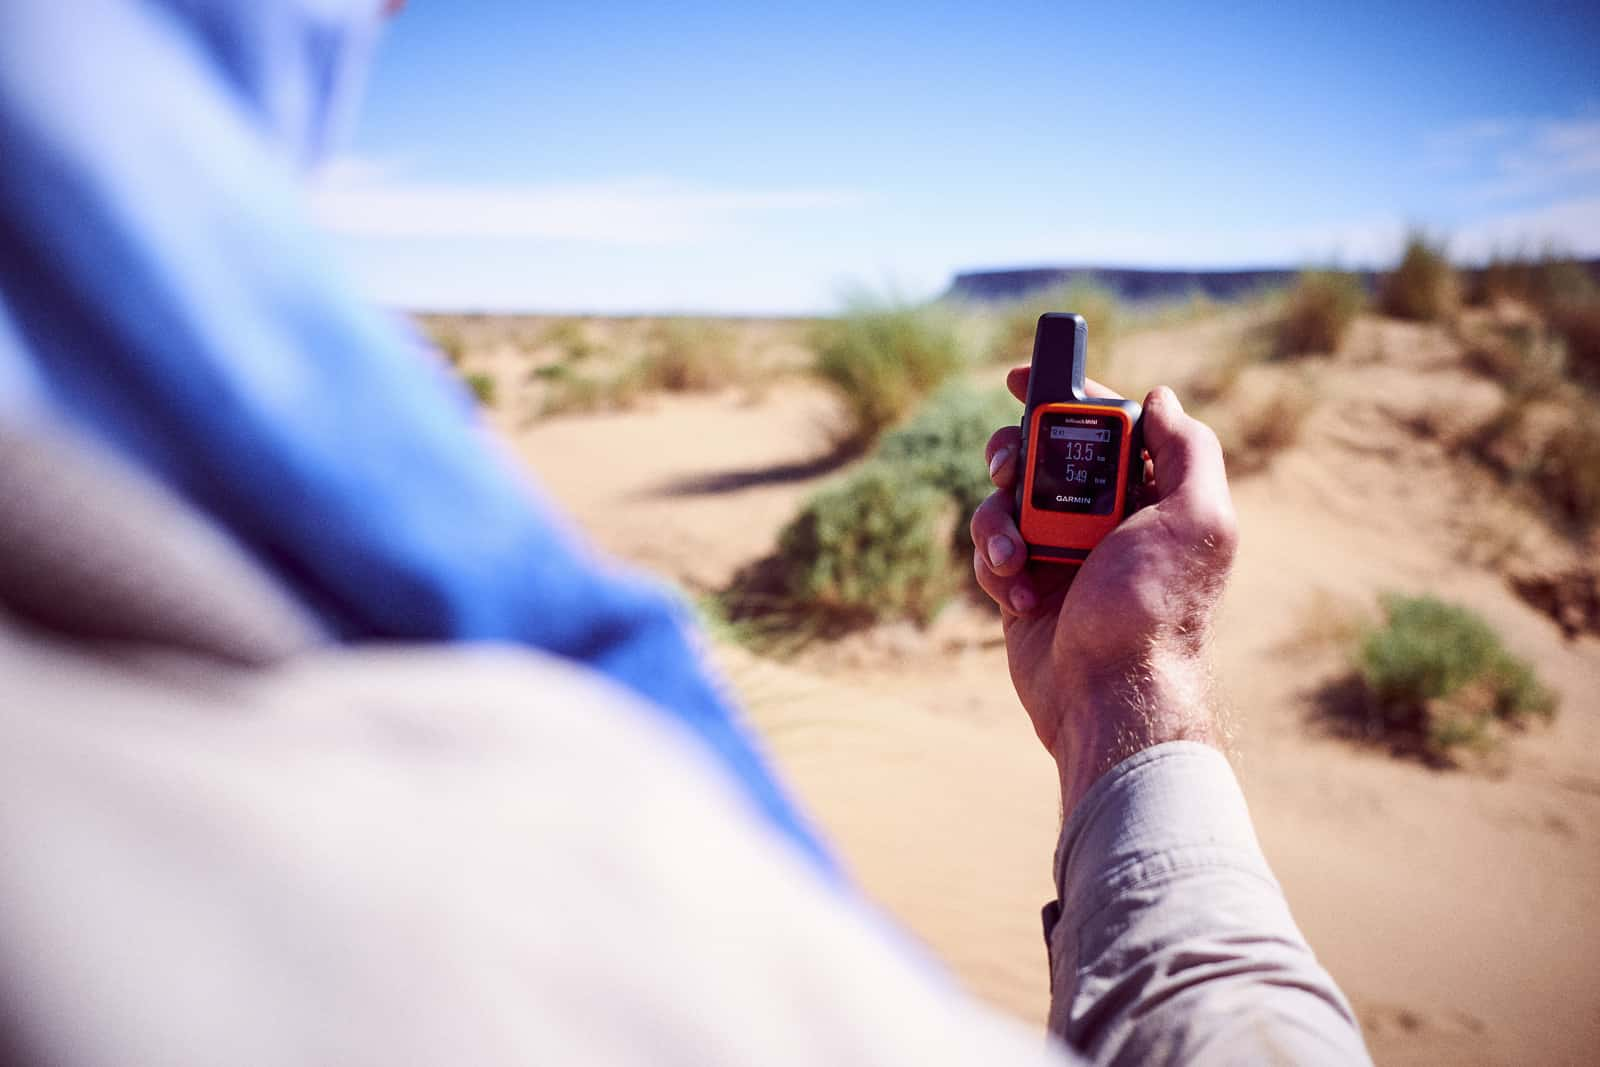 Wandermut-Sahara-Expedition-Garmin-Inreach-Mini-019